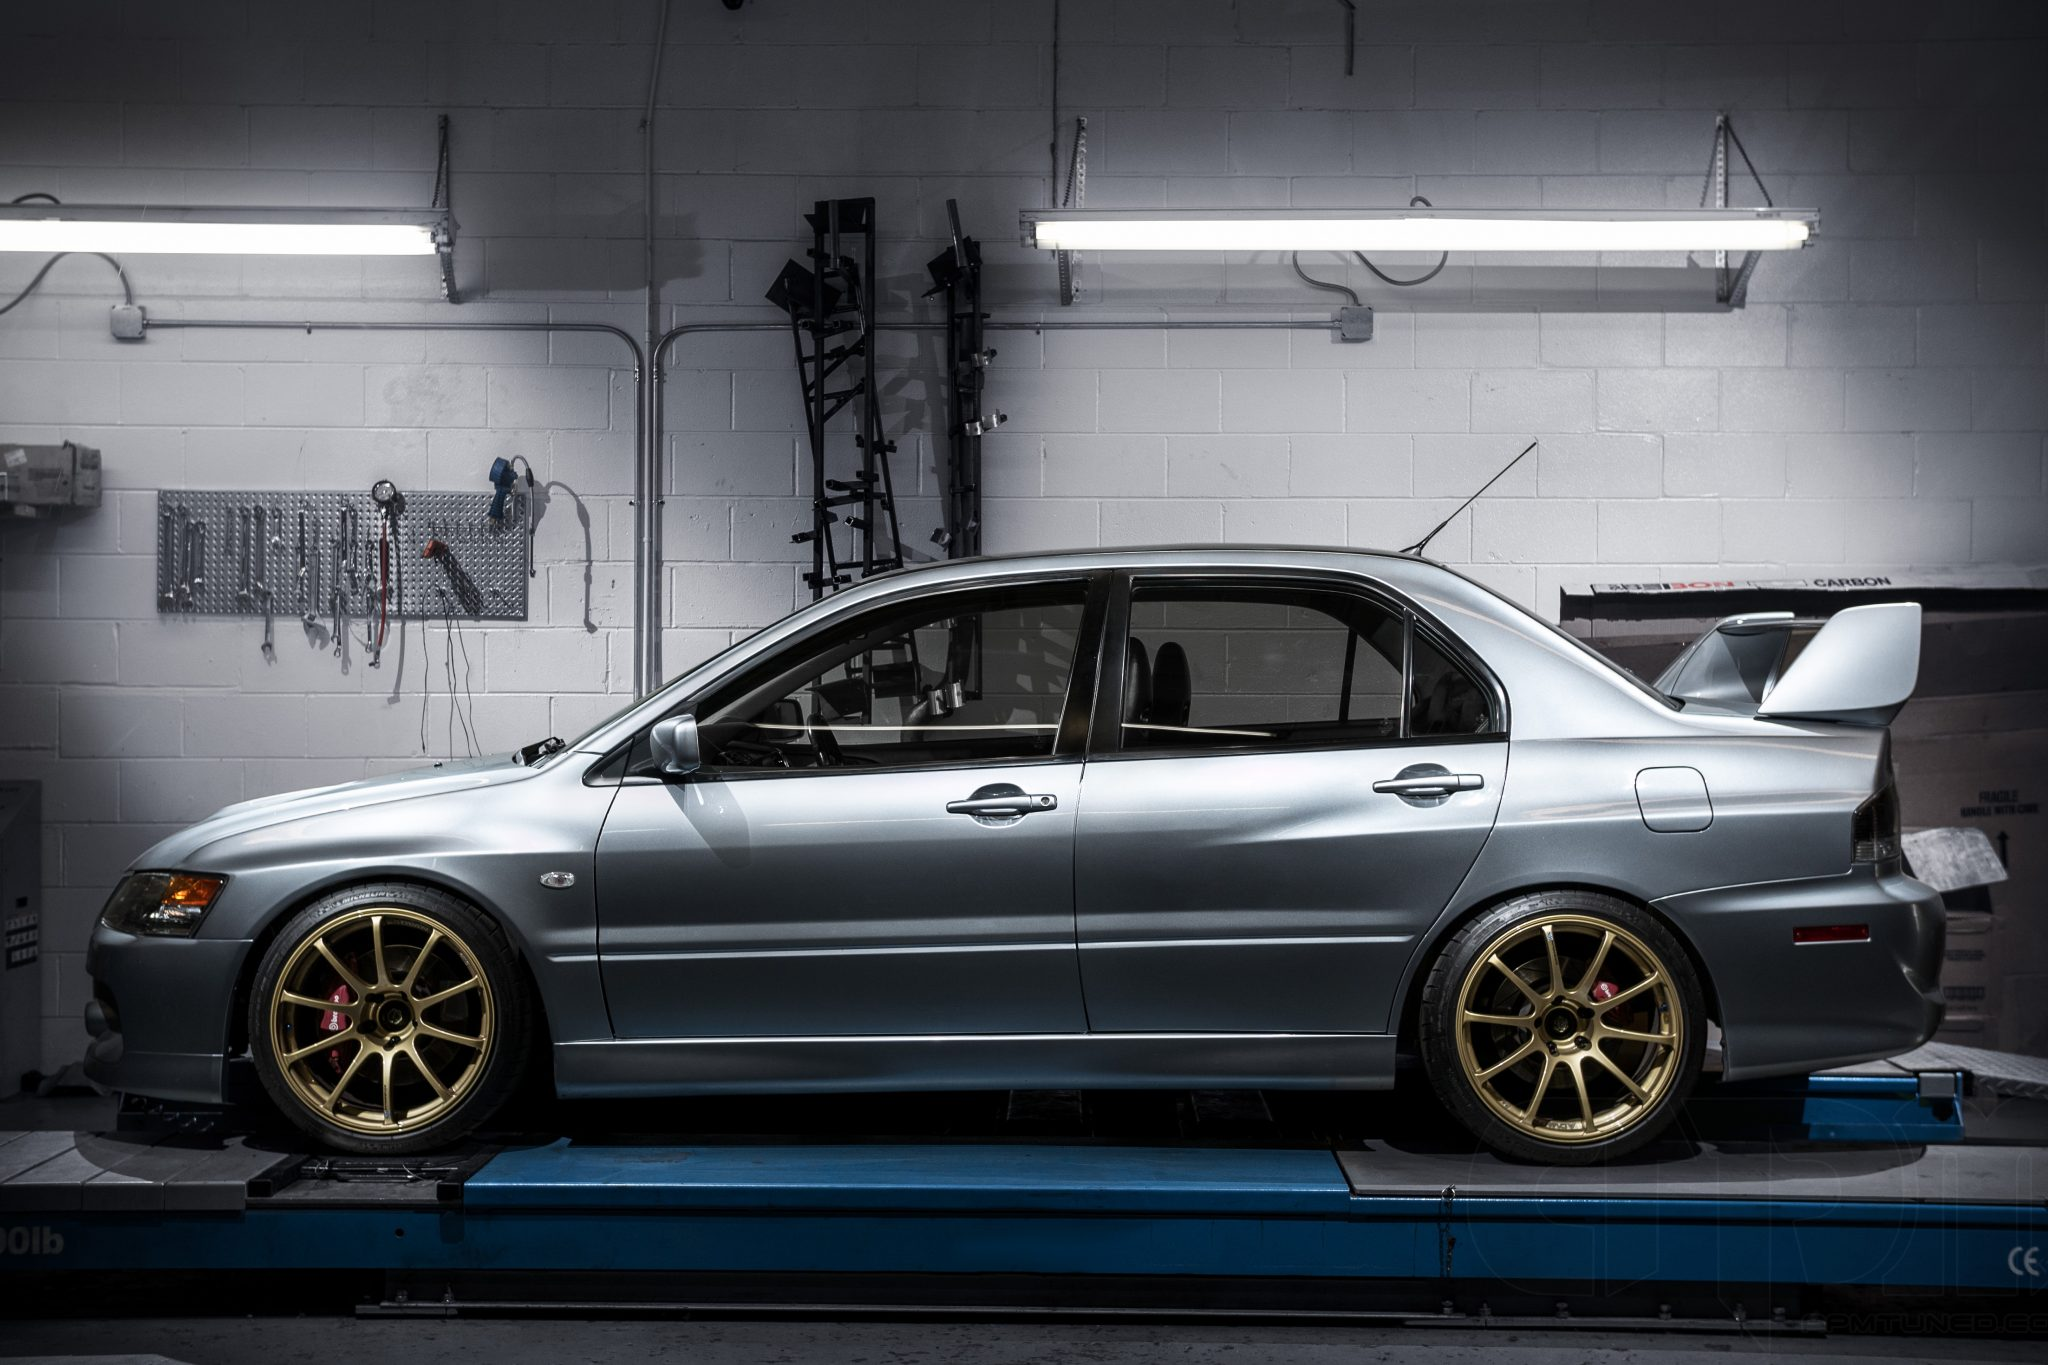 Silver Mitsubishi Evo with gold wheels and red brembo brakes sitting on our alignment rack